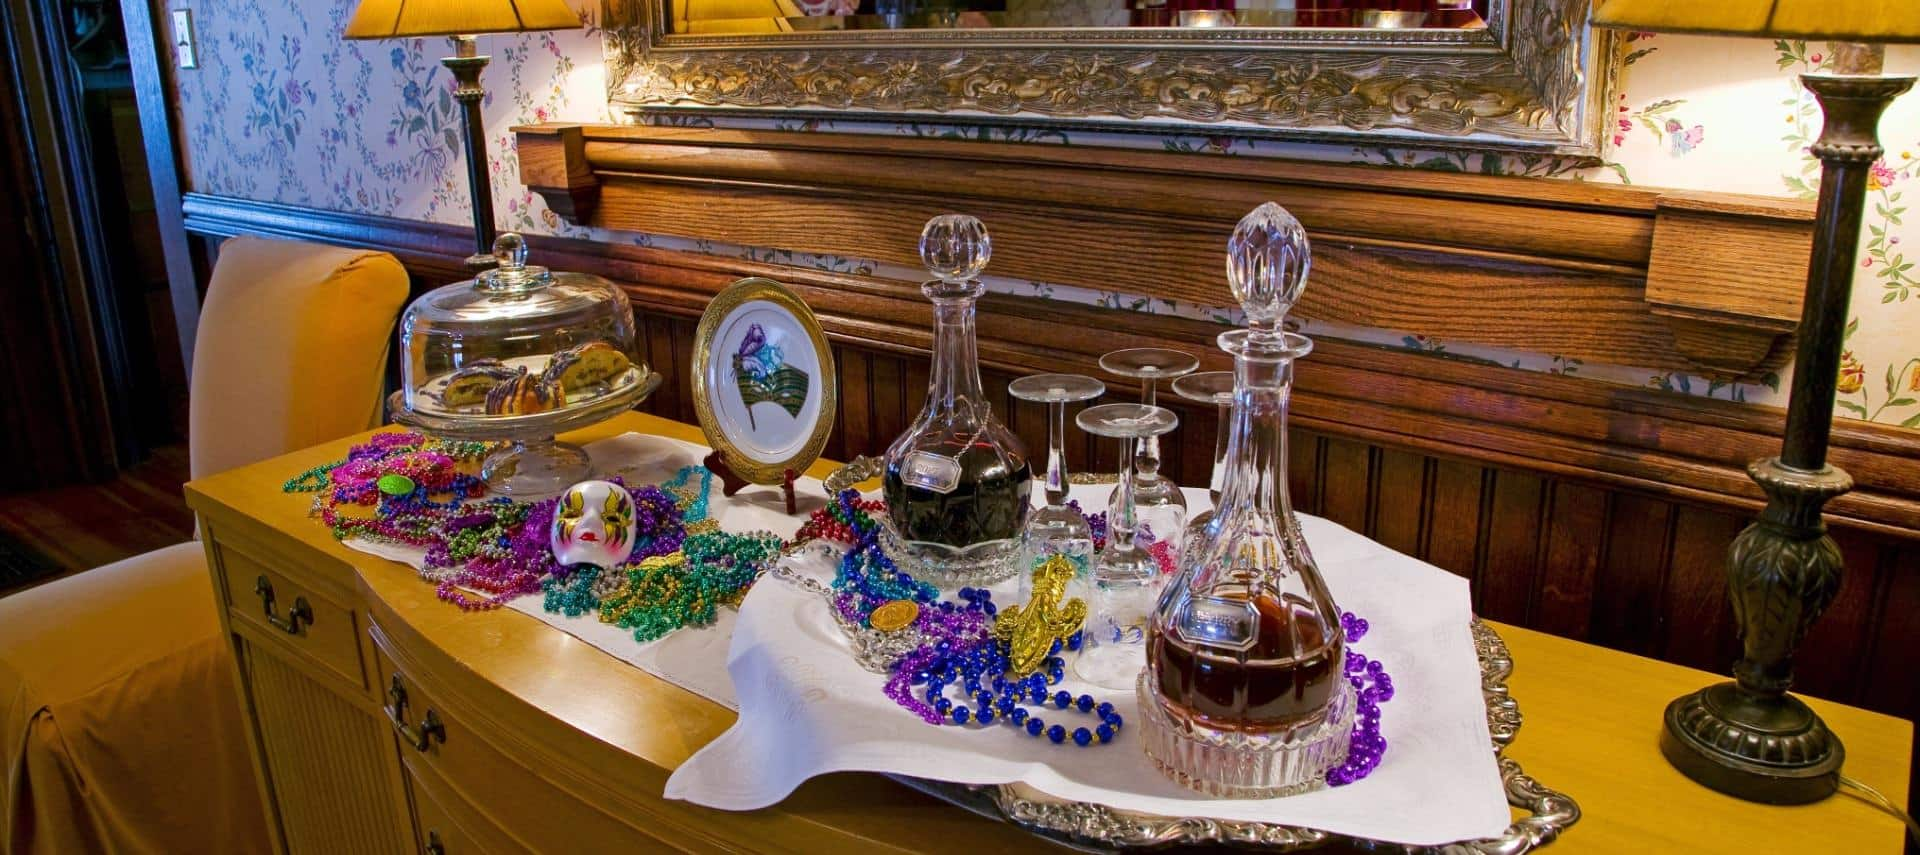 Large wooden buffet topped with Mardi Gras decorations, pastries in glass container, alcohol in glass decanters, and wine glasses